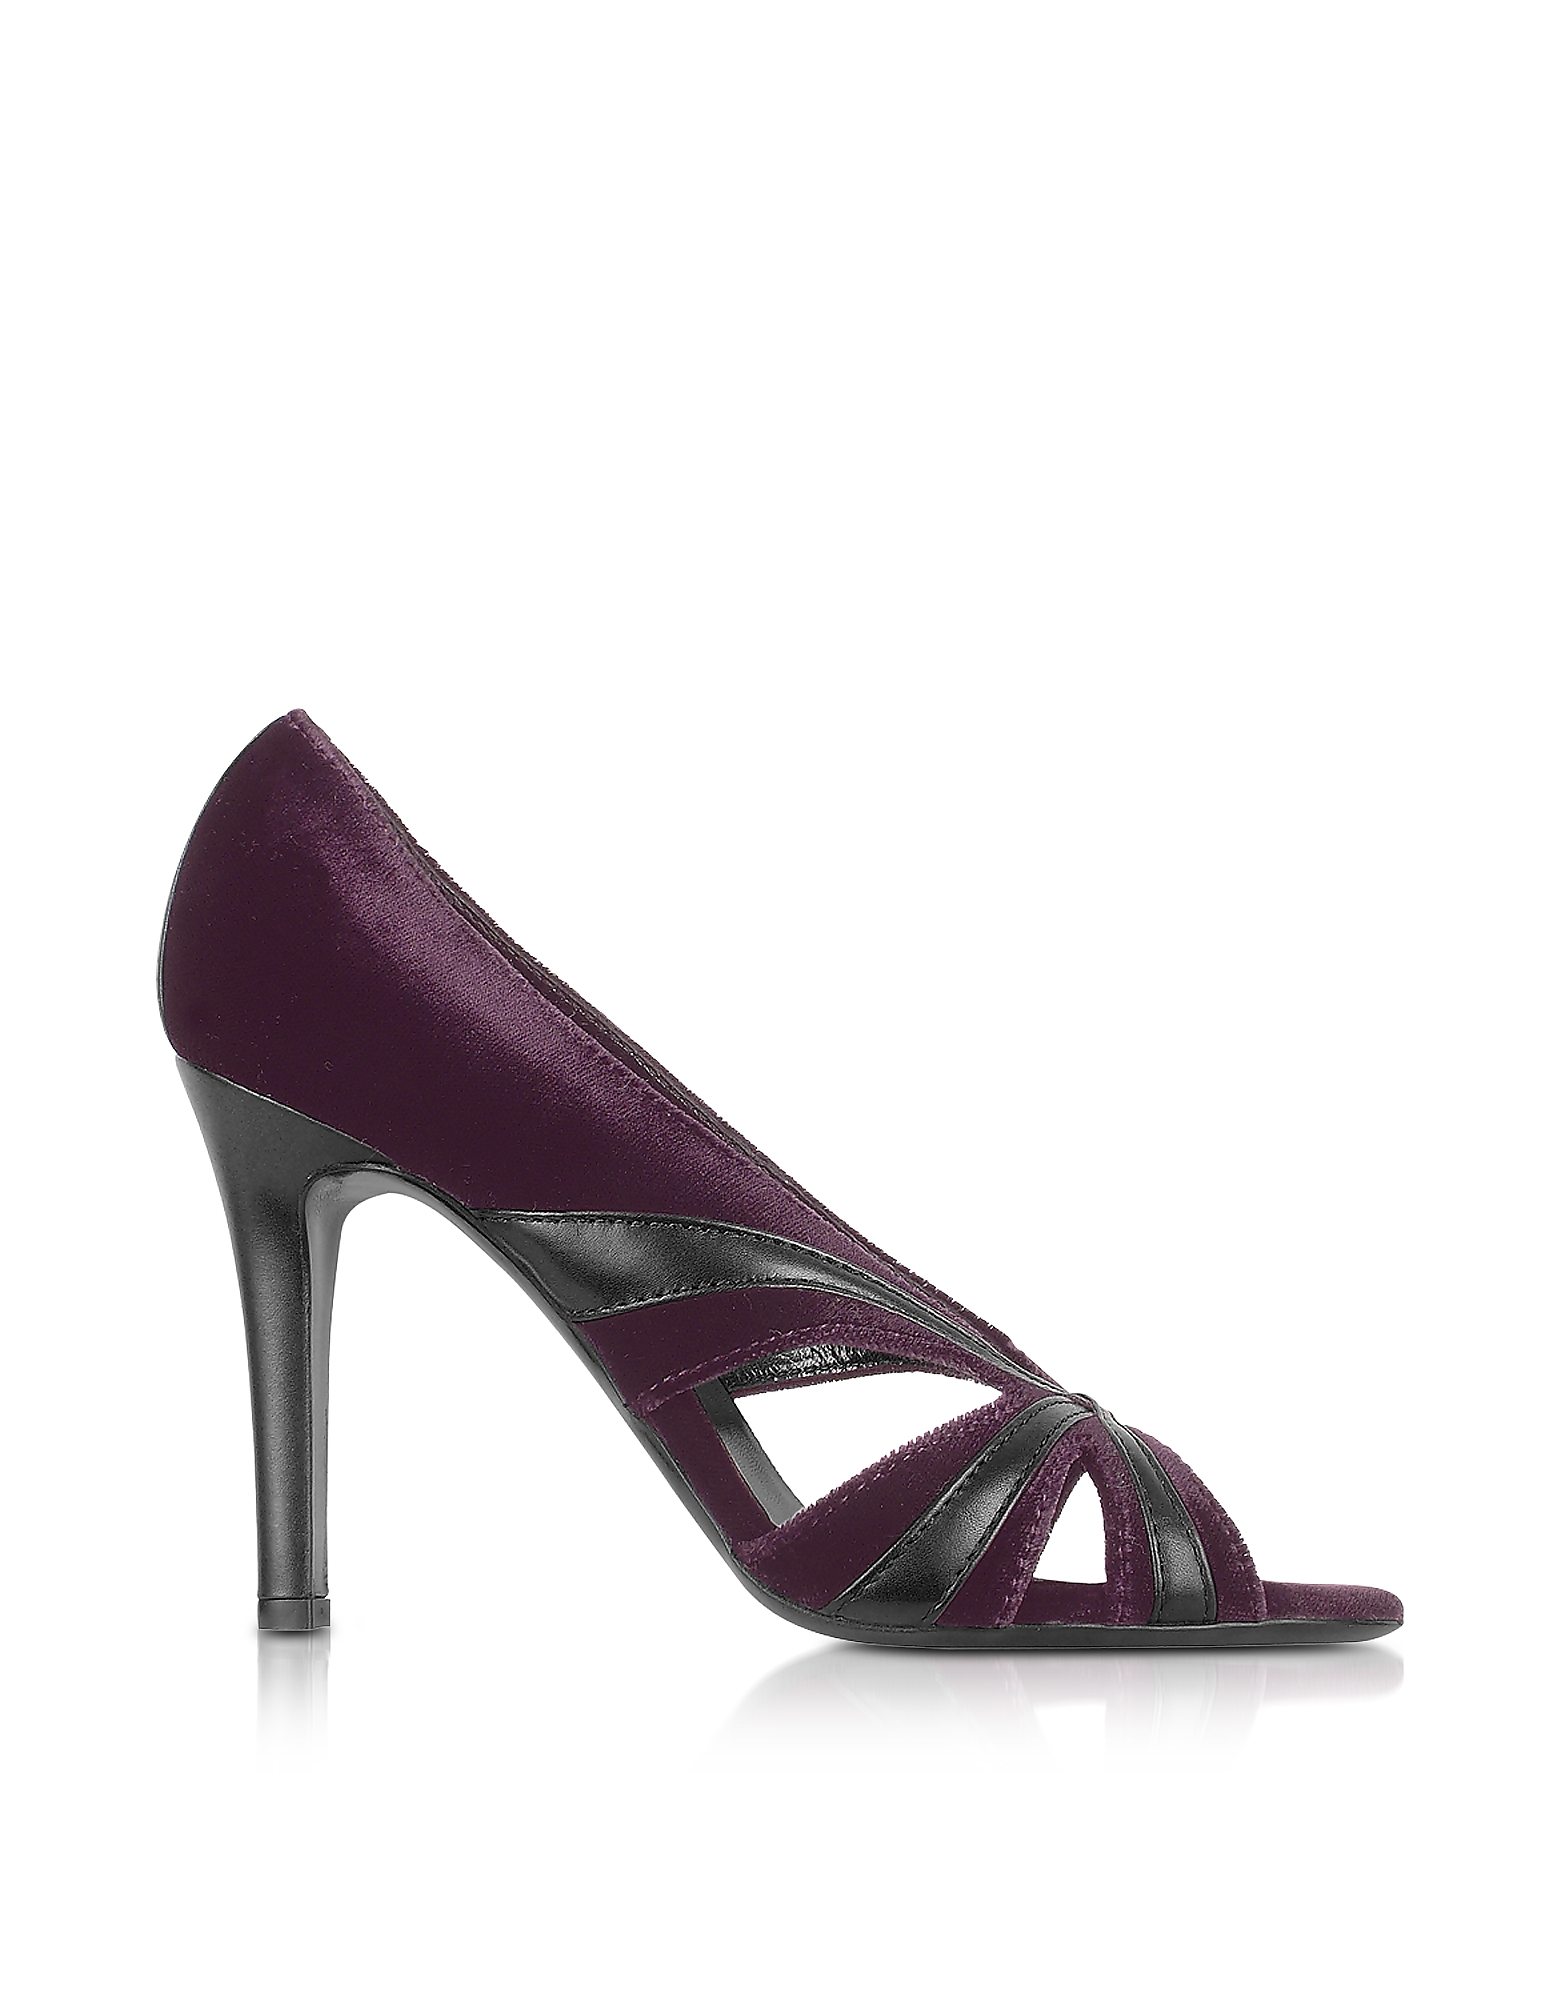 Liz Carine Designer Shoes, Purple Velvet and Leather Cut-out Evening Sandal Shoes